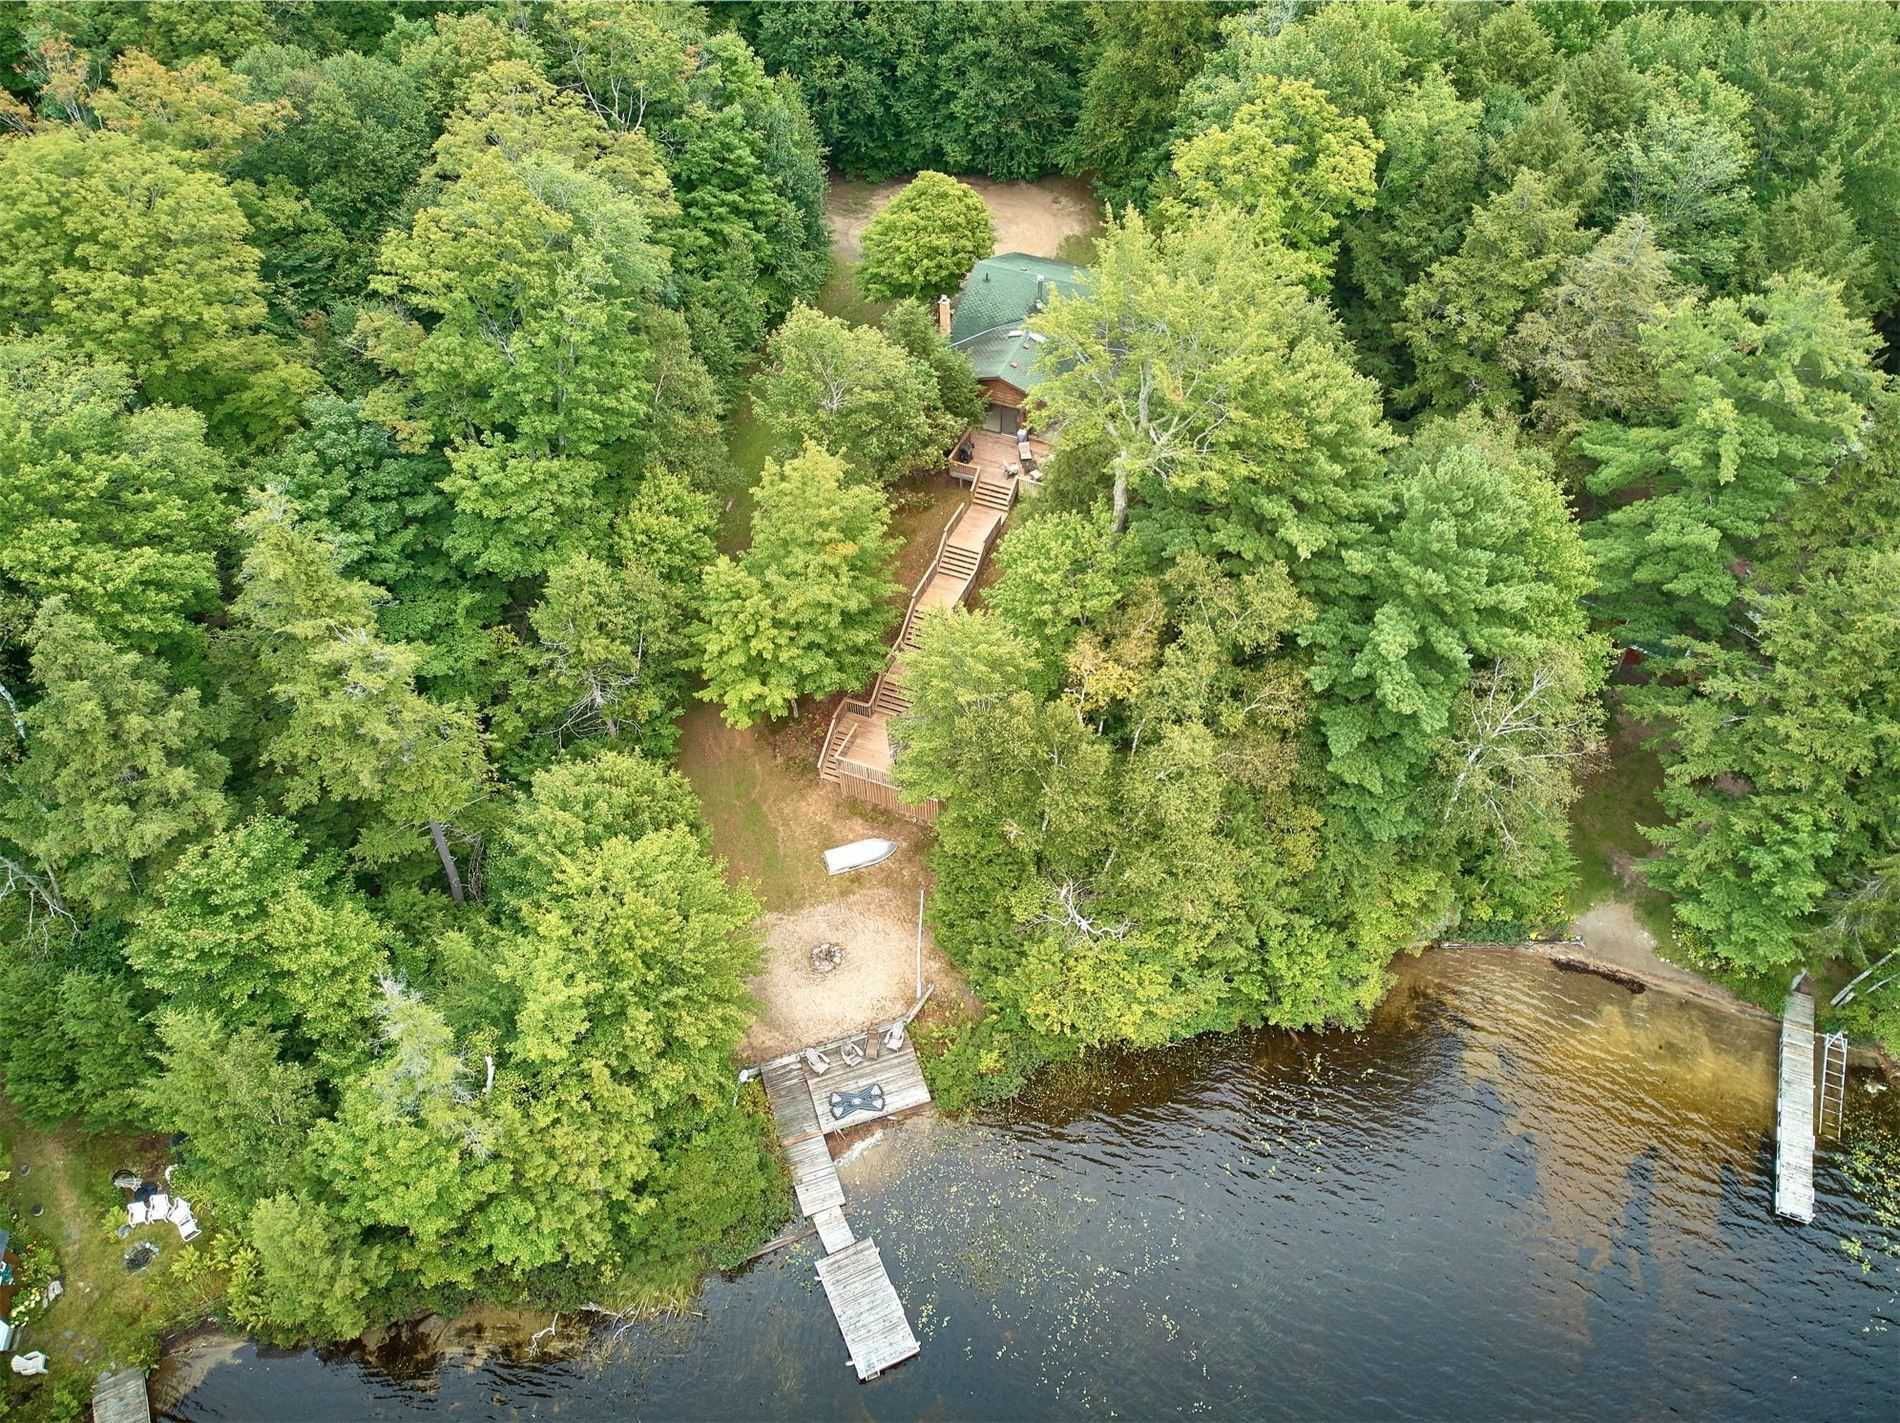 Year Round Muskoka Waterfront Home Retreat! Fantastic Location On A Private Shared Road, Just Minutes To Port Carling, Port Severn And Highway 400! Only 50 Minutes From Barrie. Move In Ready - Freshly Painted And New Flooring Throughout. Walkout To Multi-Level Decks With Staircase To Lake! Floating Dock, Gazebo. Double Oil Tank With Forced Air Furnace, Auxiliary Electric Heat, And A Wood Stove. Visit Our Site For More Info. A Waterfront #hometostay!